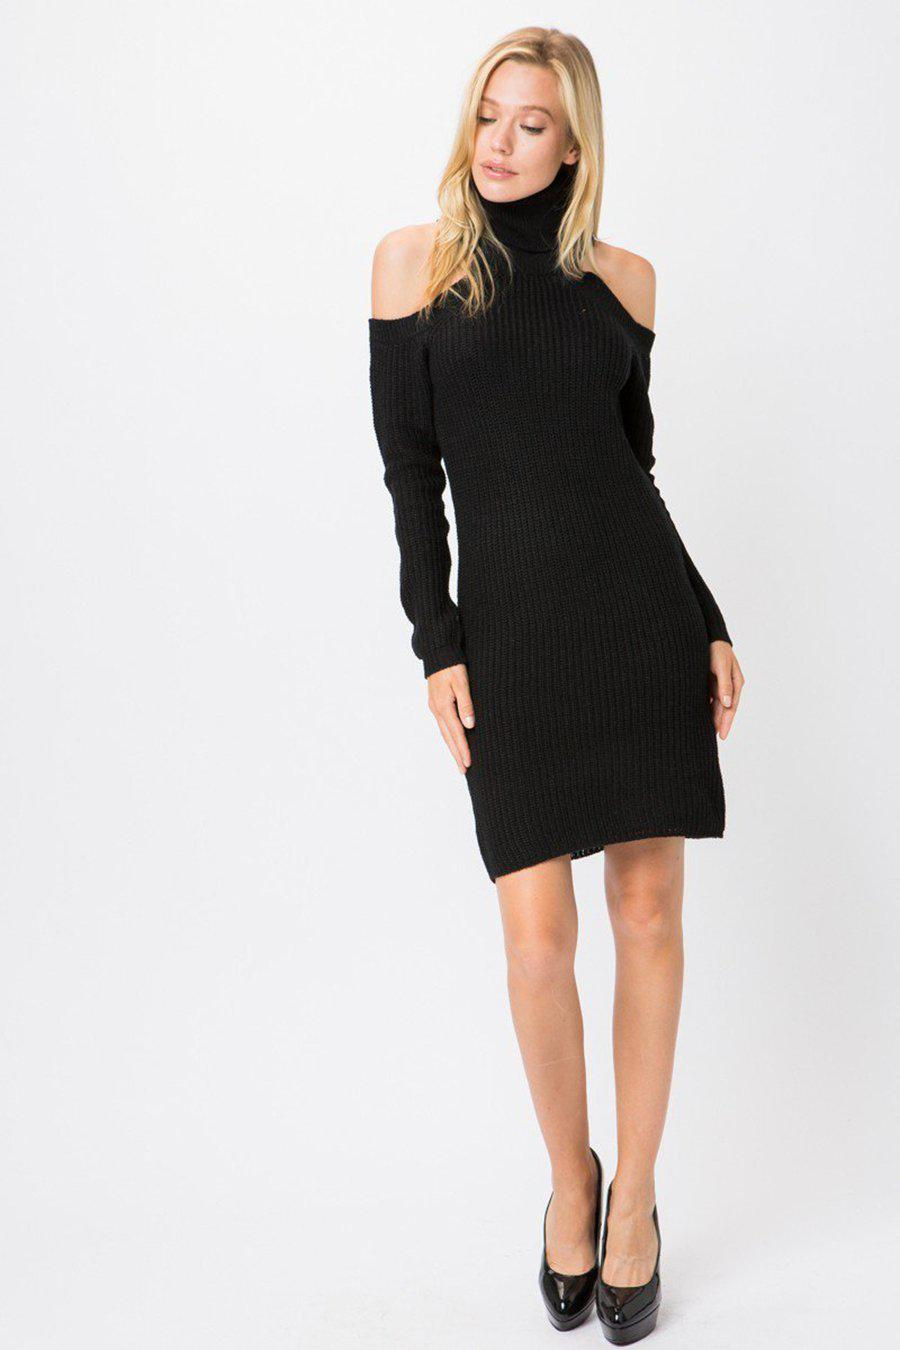 Black Ribbed Knit Turtleneck Long Sleeves Sweater Dress - steven wick